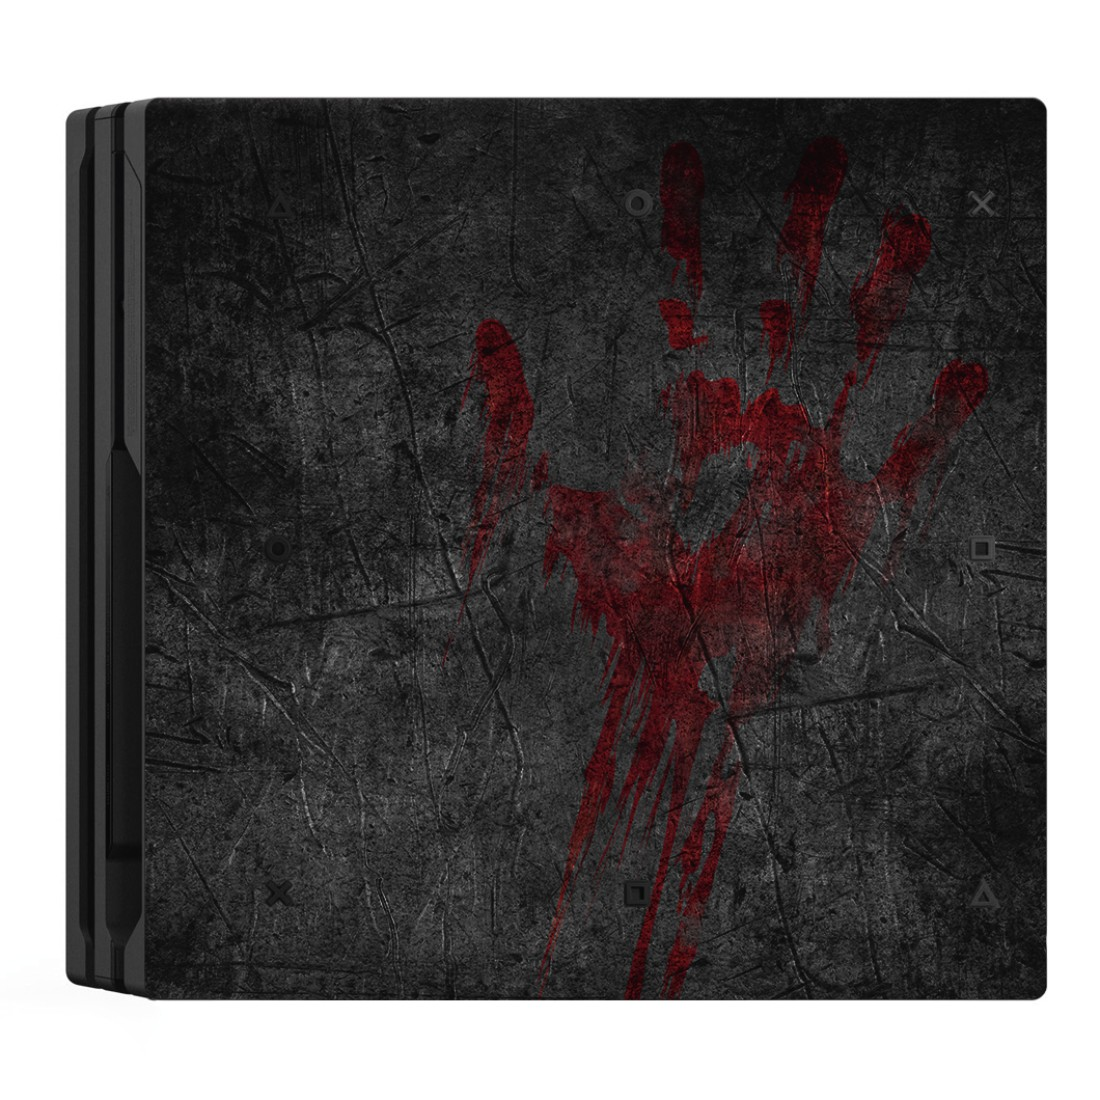 "awx2 High-Res Appliance 2 - Hama, ""Undead"" Design Skin for PlayStation 4 PRO"